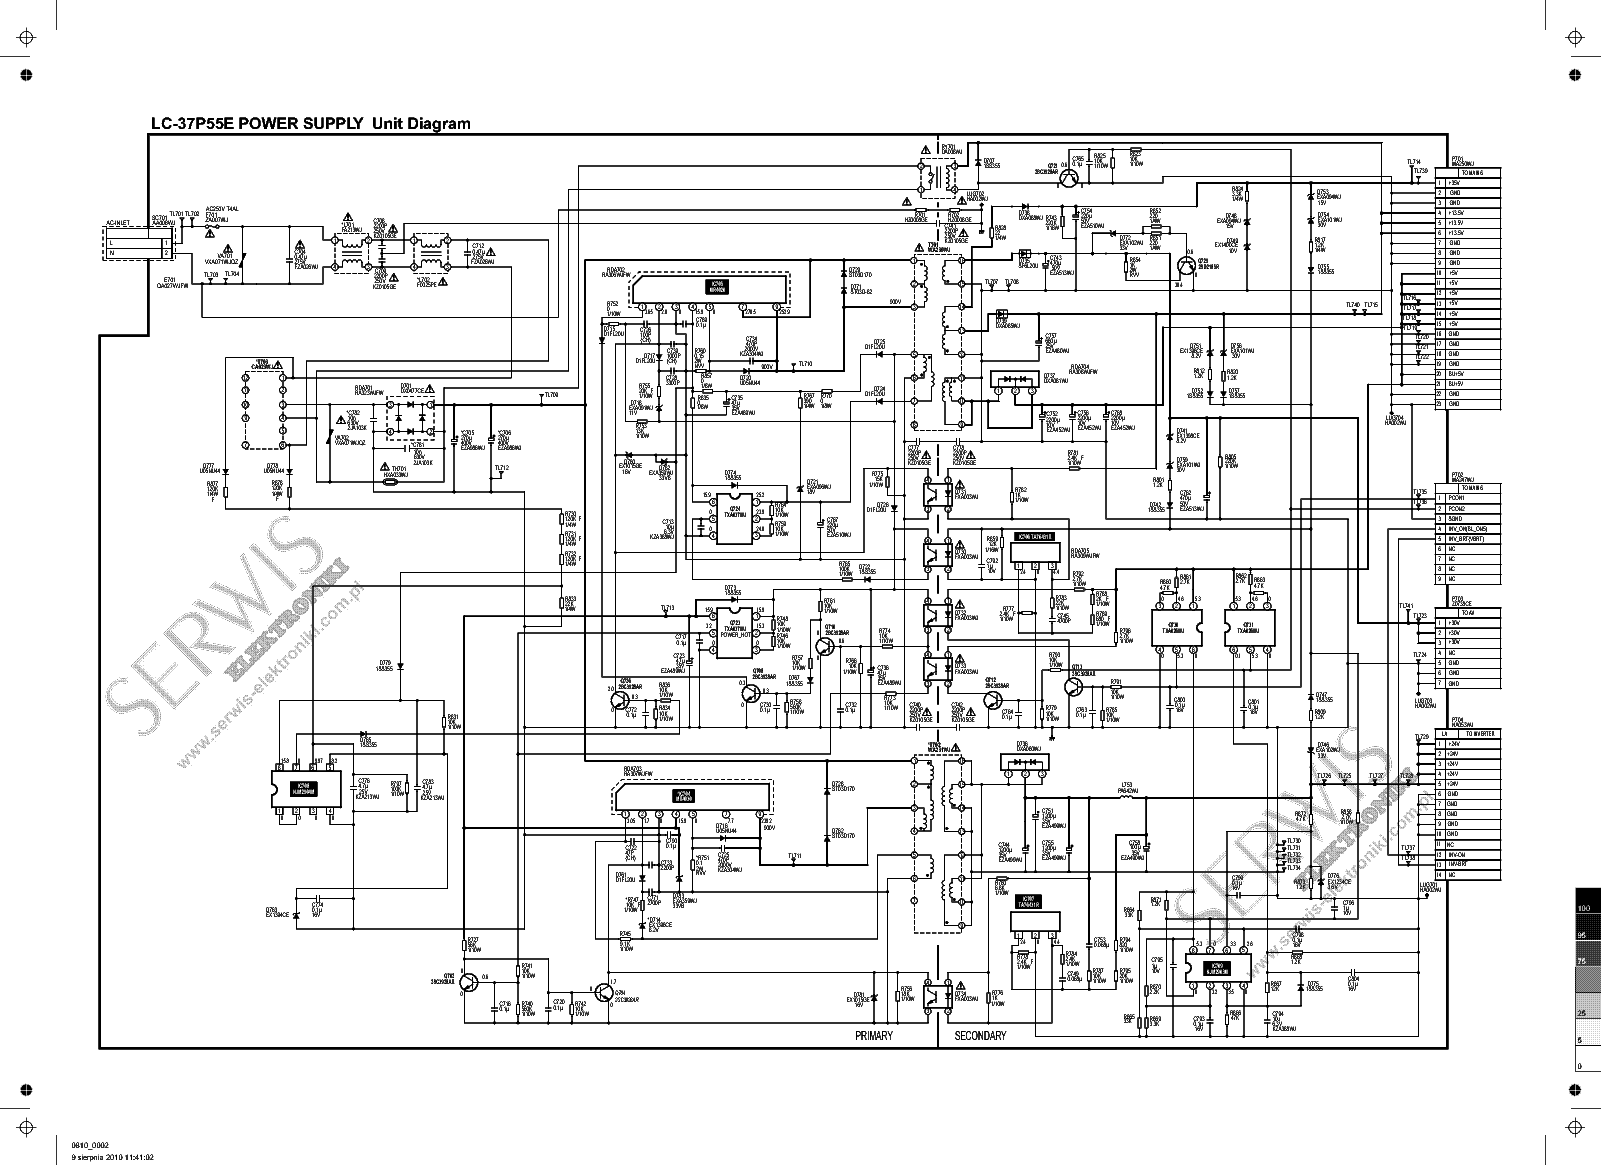 12vdc Regulated Power Supply Schematic